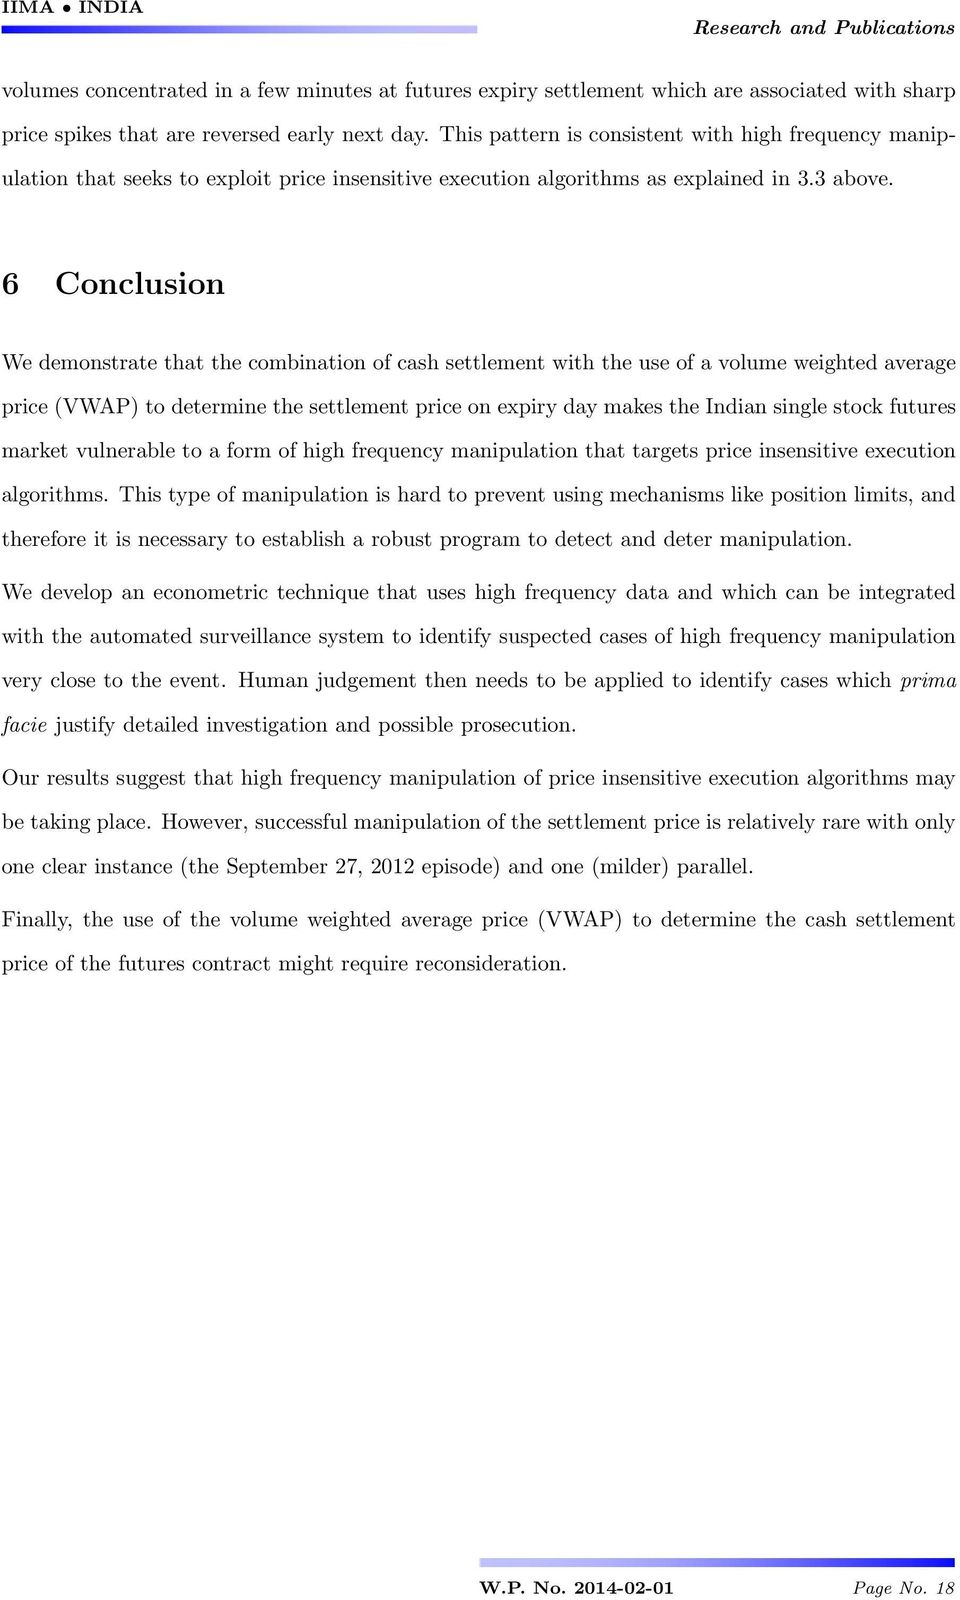 6 Conclusion We demonstrate that the combination of cash settlement with the use of a volume weighted average price (VWAP) to determine the settlement price on expiry day makes the Indian single